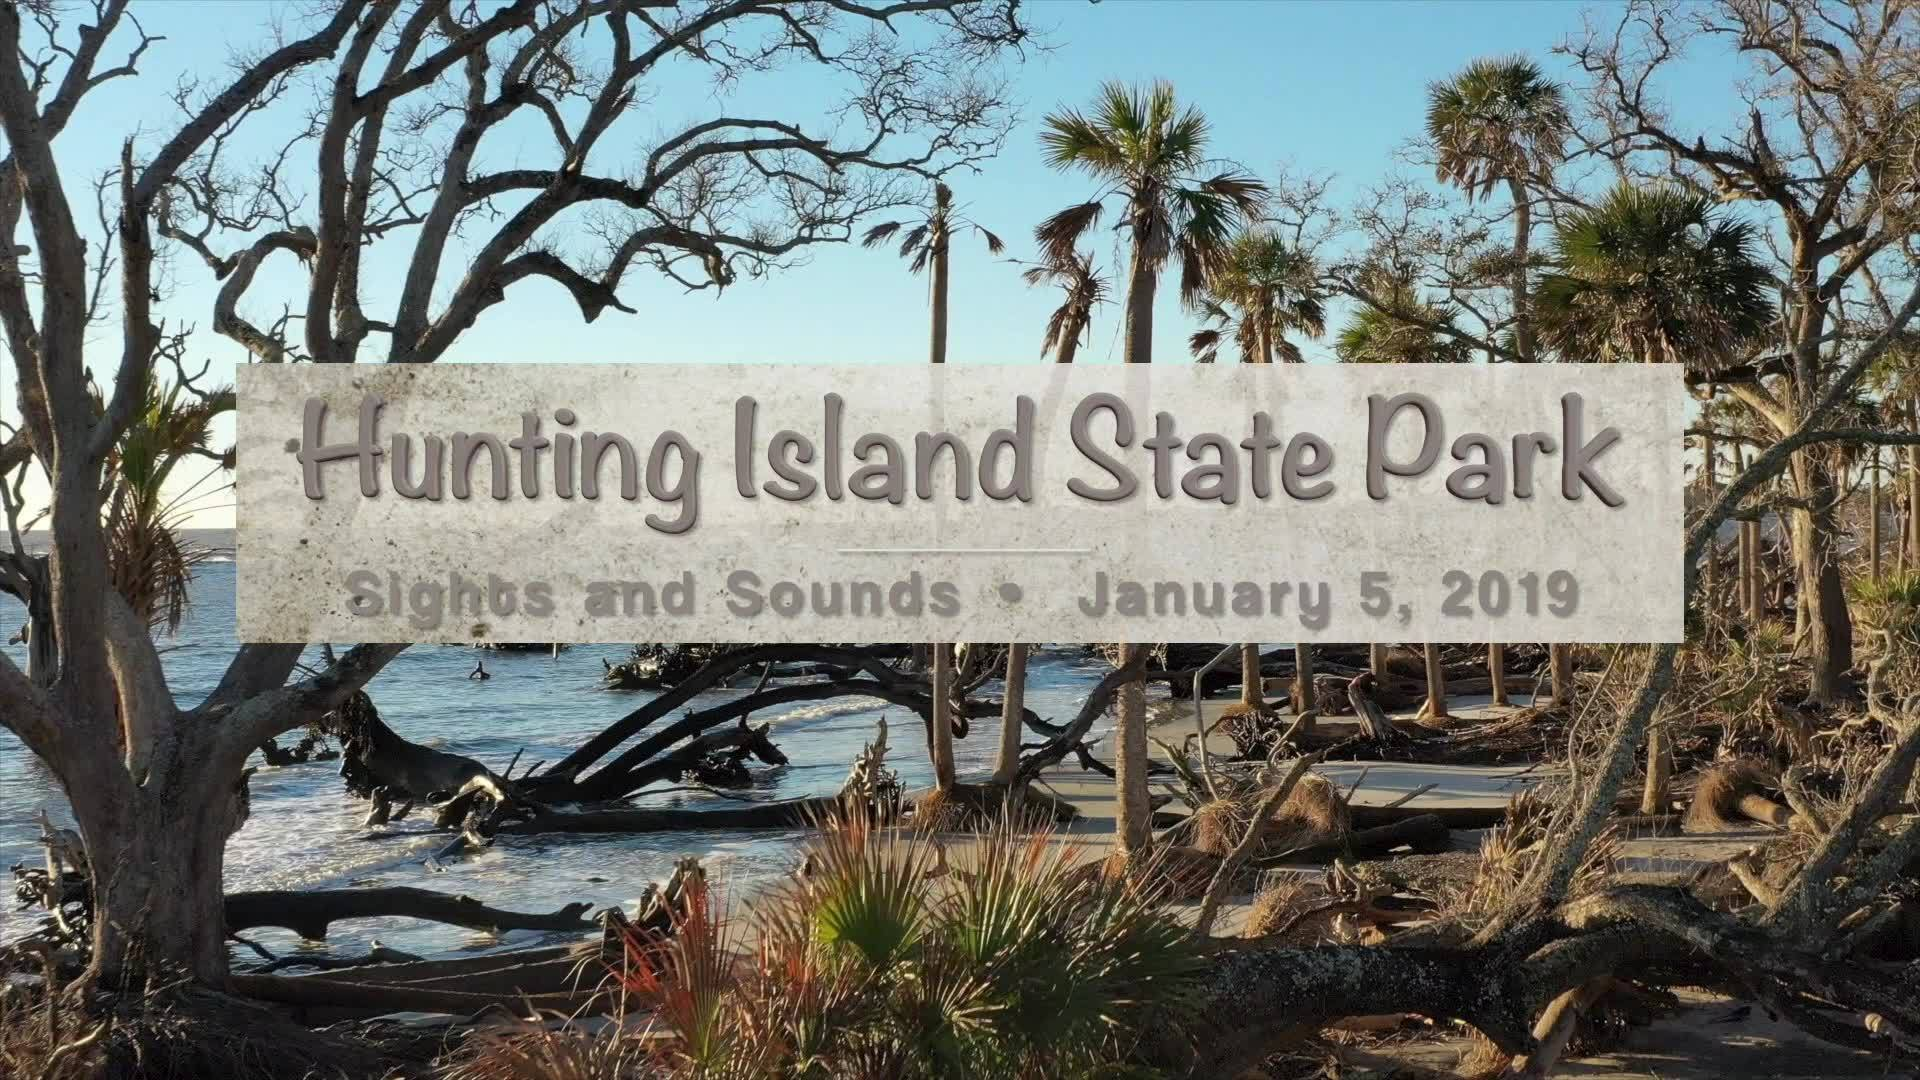 Drone over Hunting Island State Park